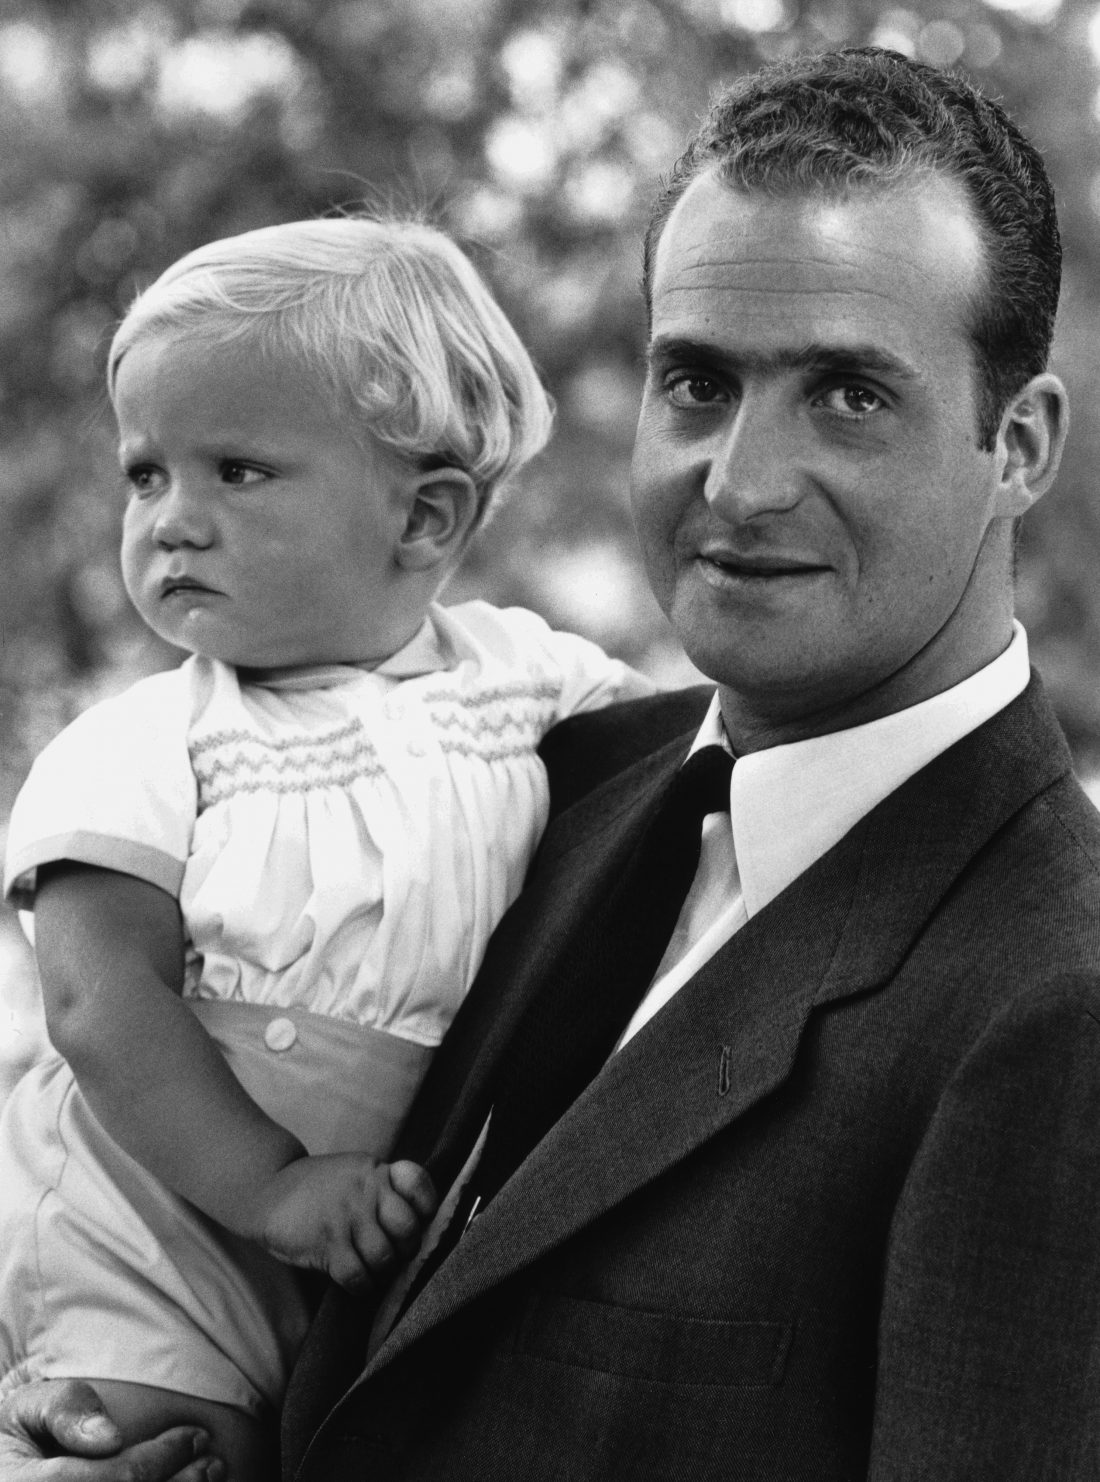 King Juan Carlos I of Spain with his baby son Prince Felipe, 29th July 1969. (Photo by Express/Hulton Archive/Getty Images)